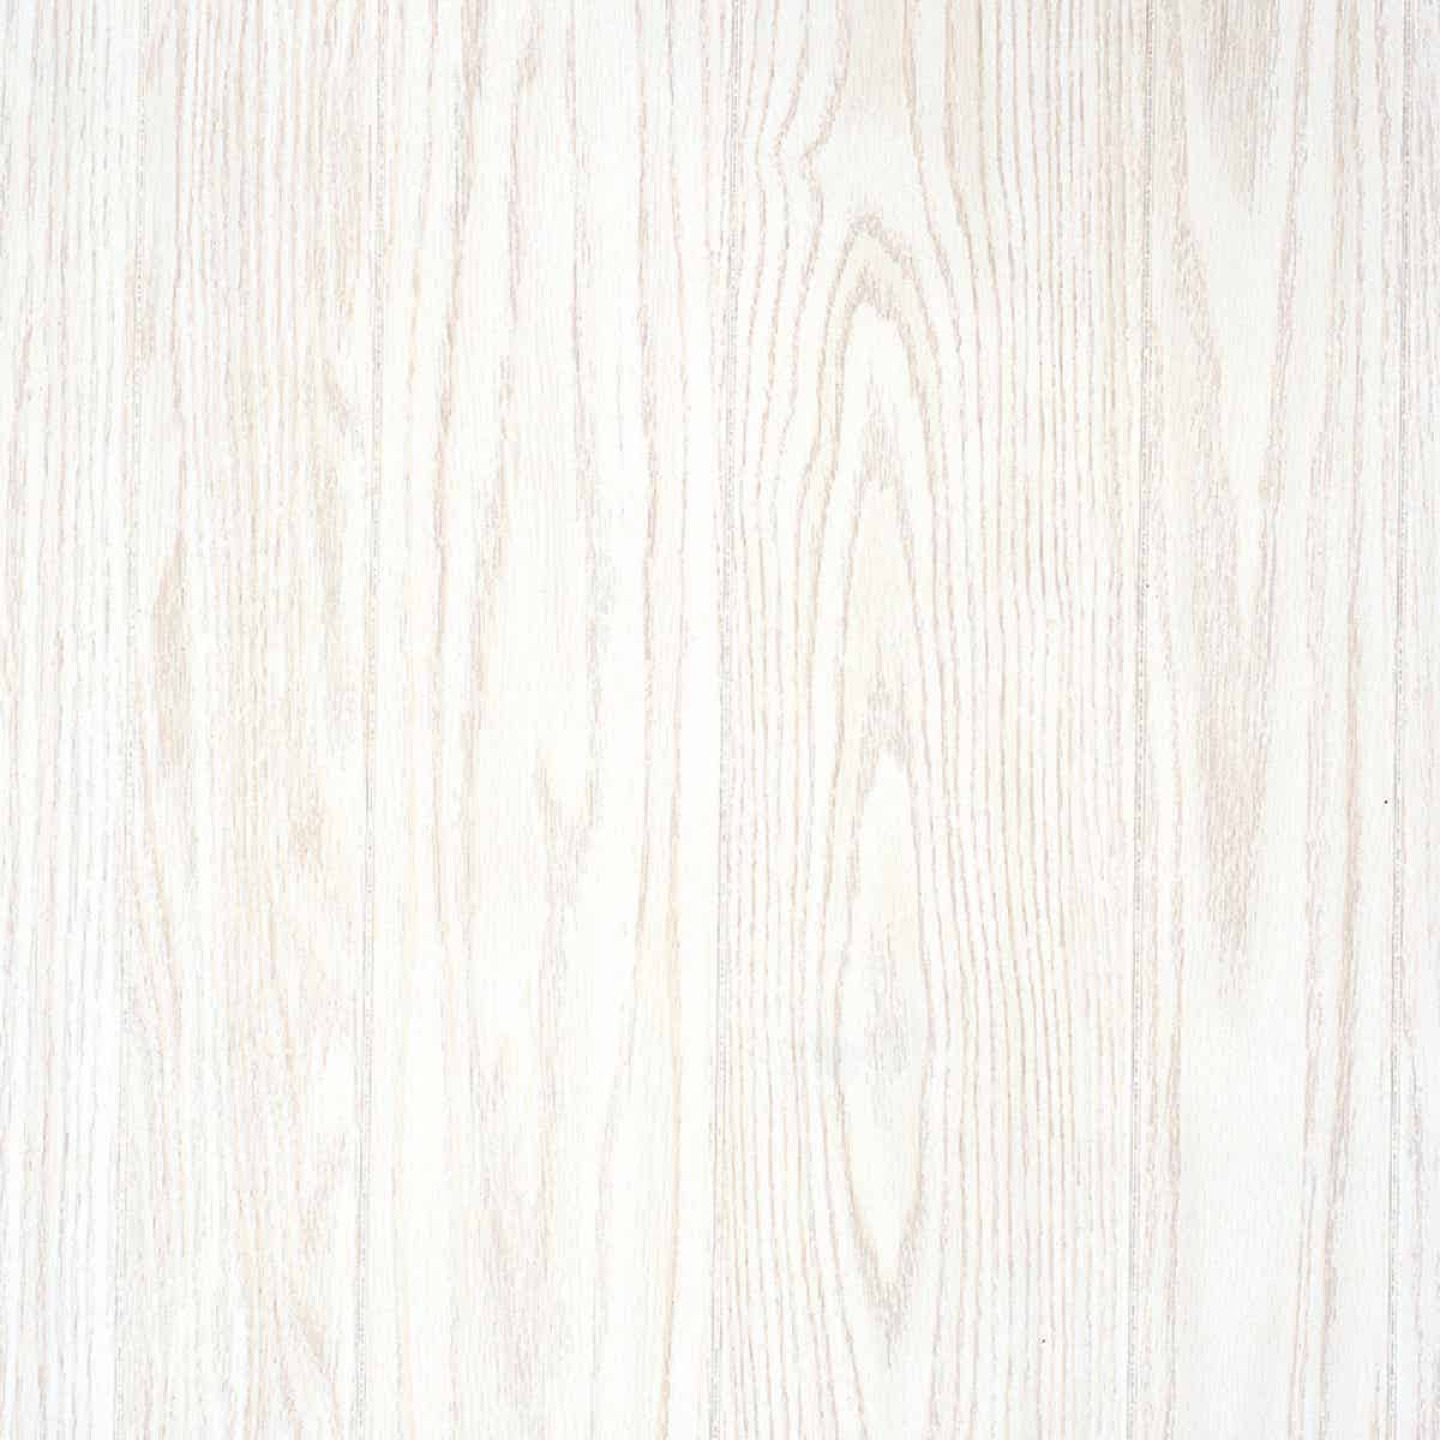 DPI 4 Ft. x 8 Ft. x 1/8 In. White Woodgrain Westminster Wall Paneling Image 1